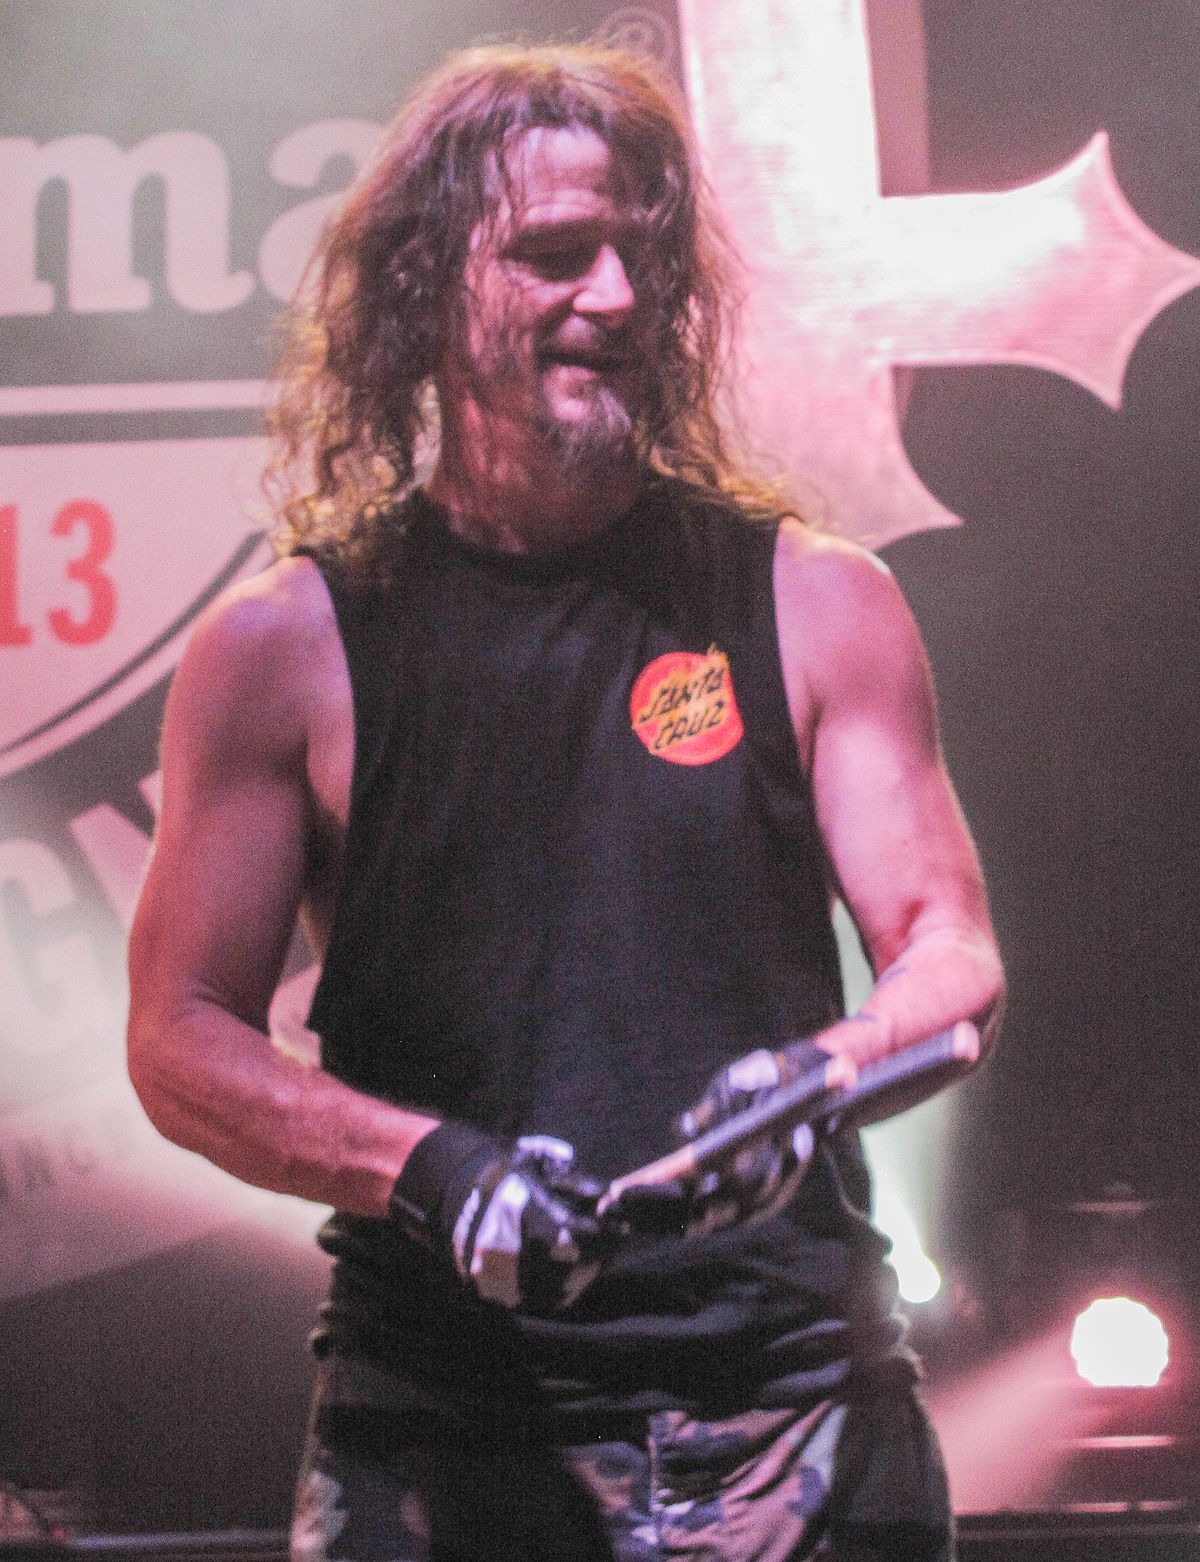 Paul Bostaph - Wikipedia